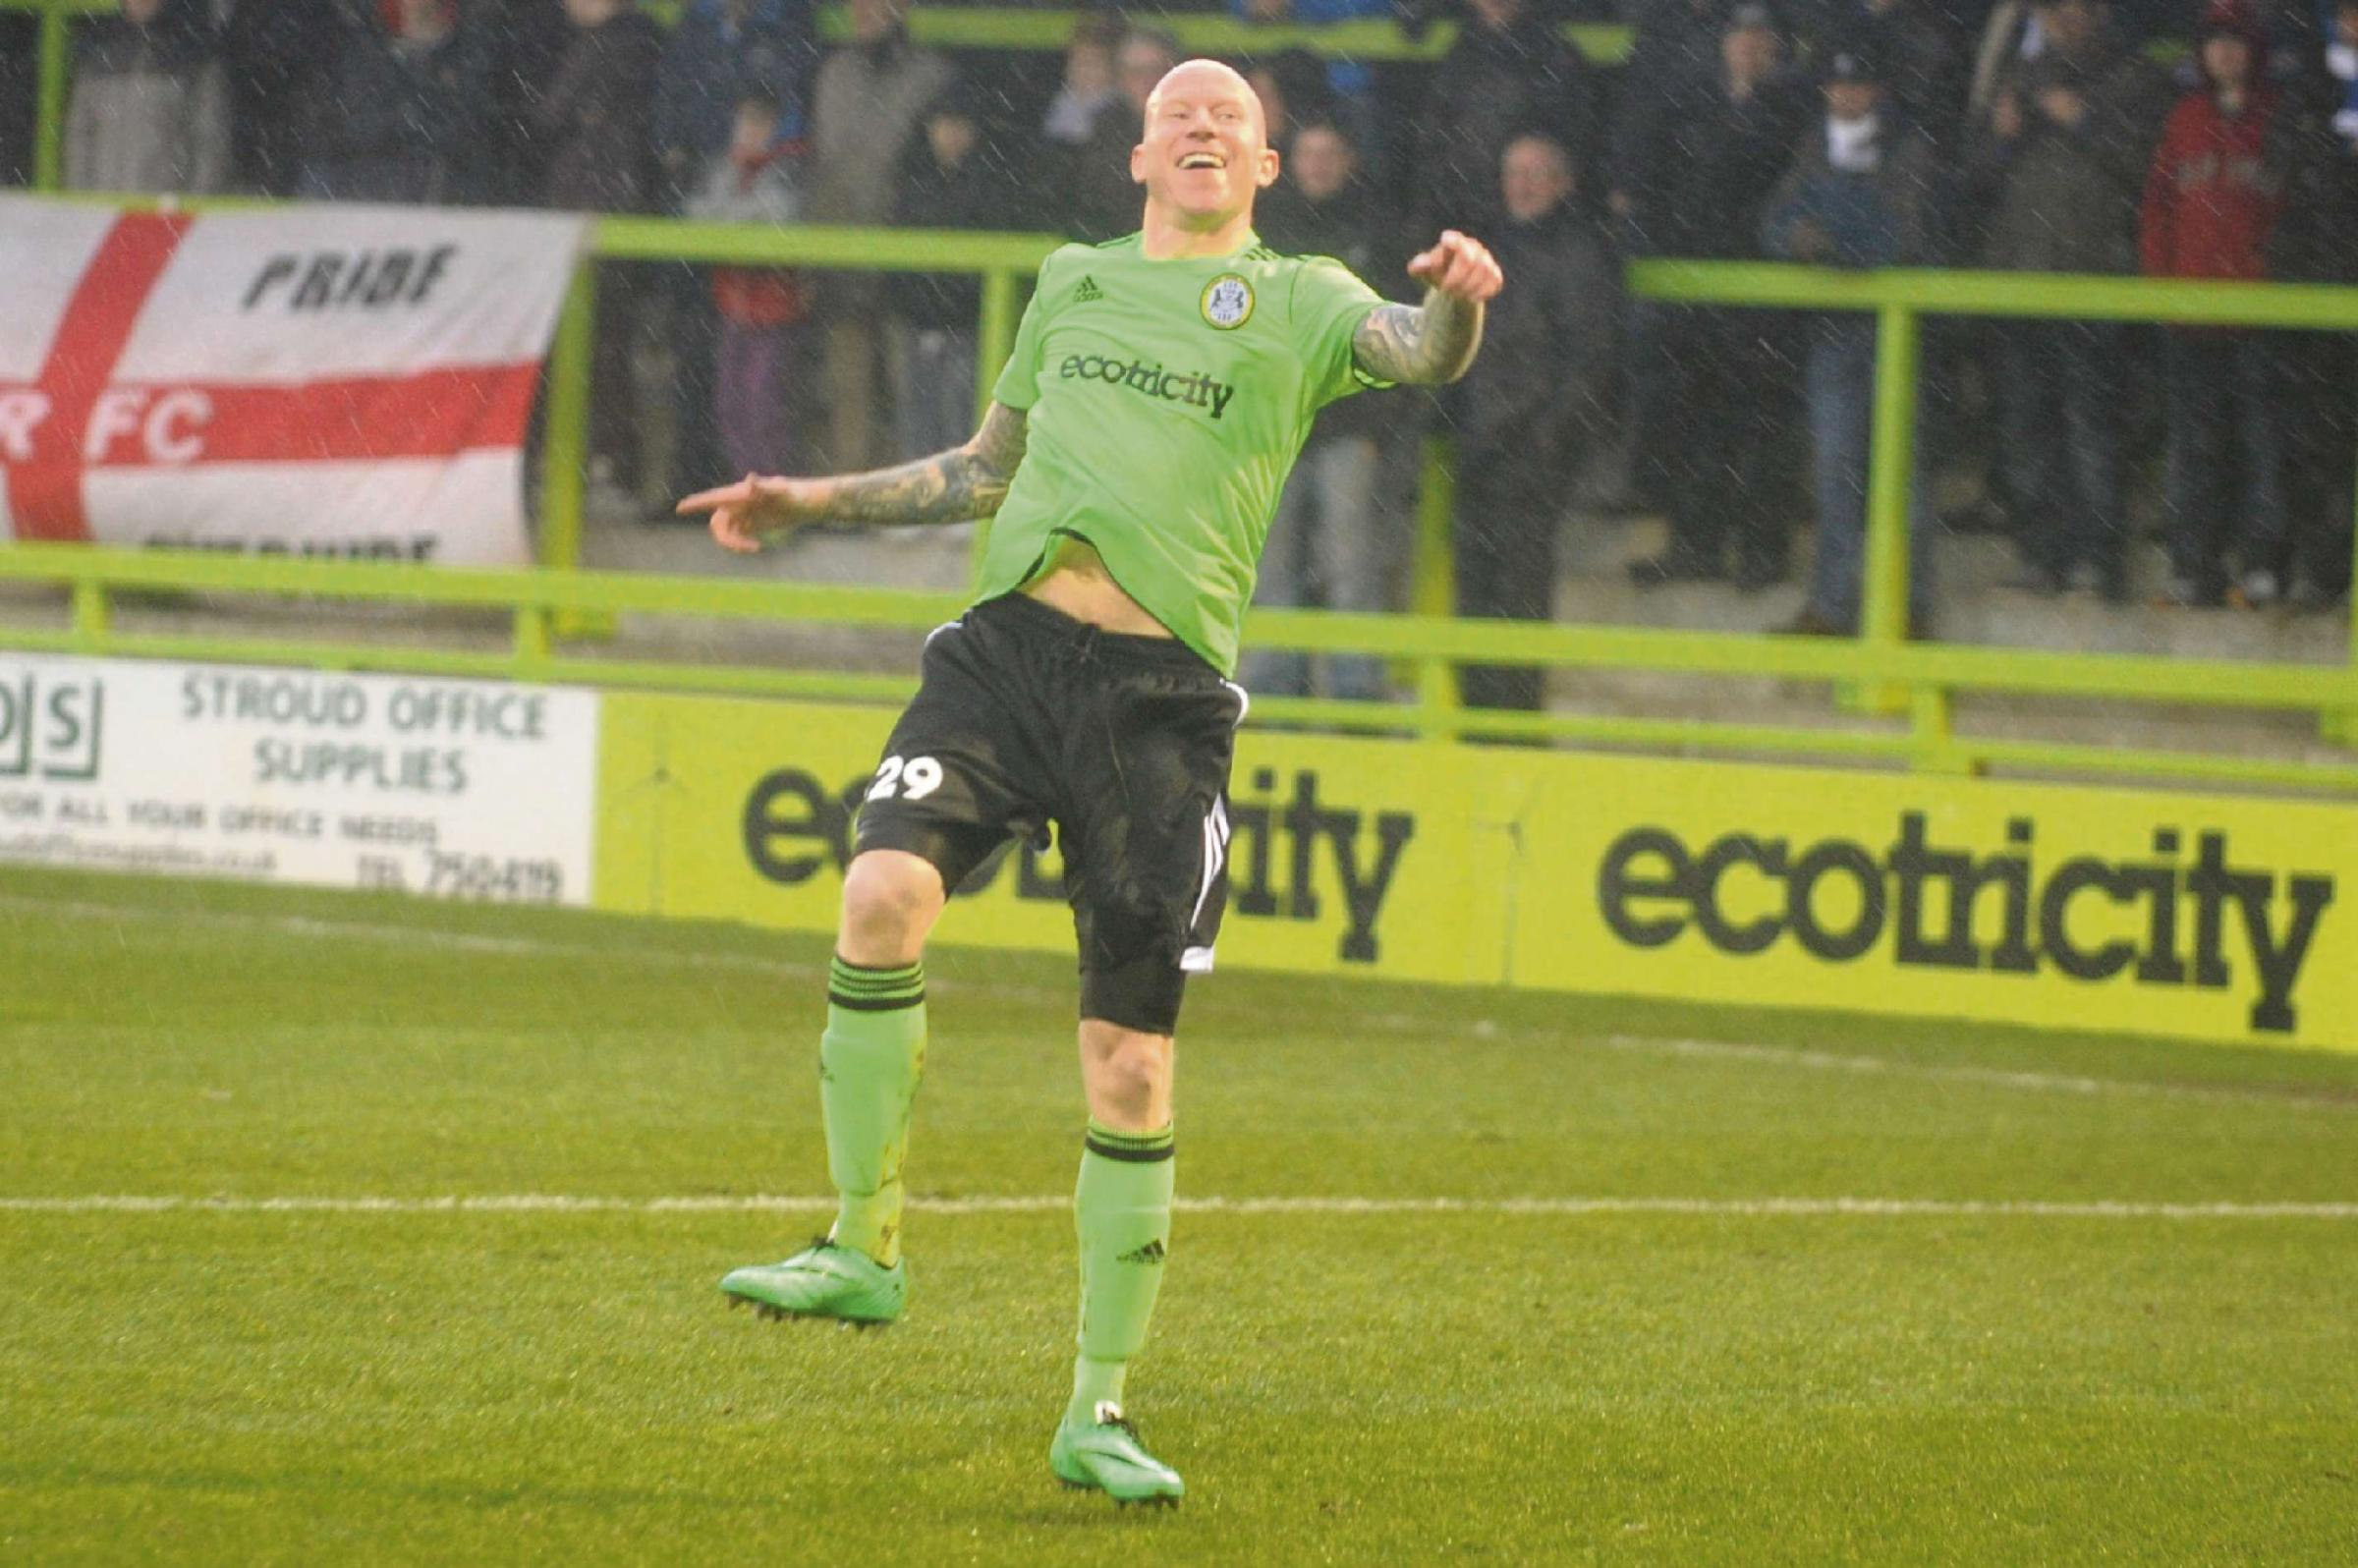 Lee Hughes scored Forest Green's equaliser at Aldershot (4116147)